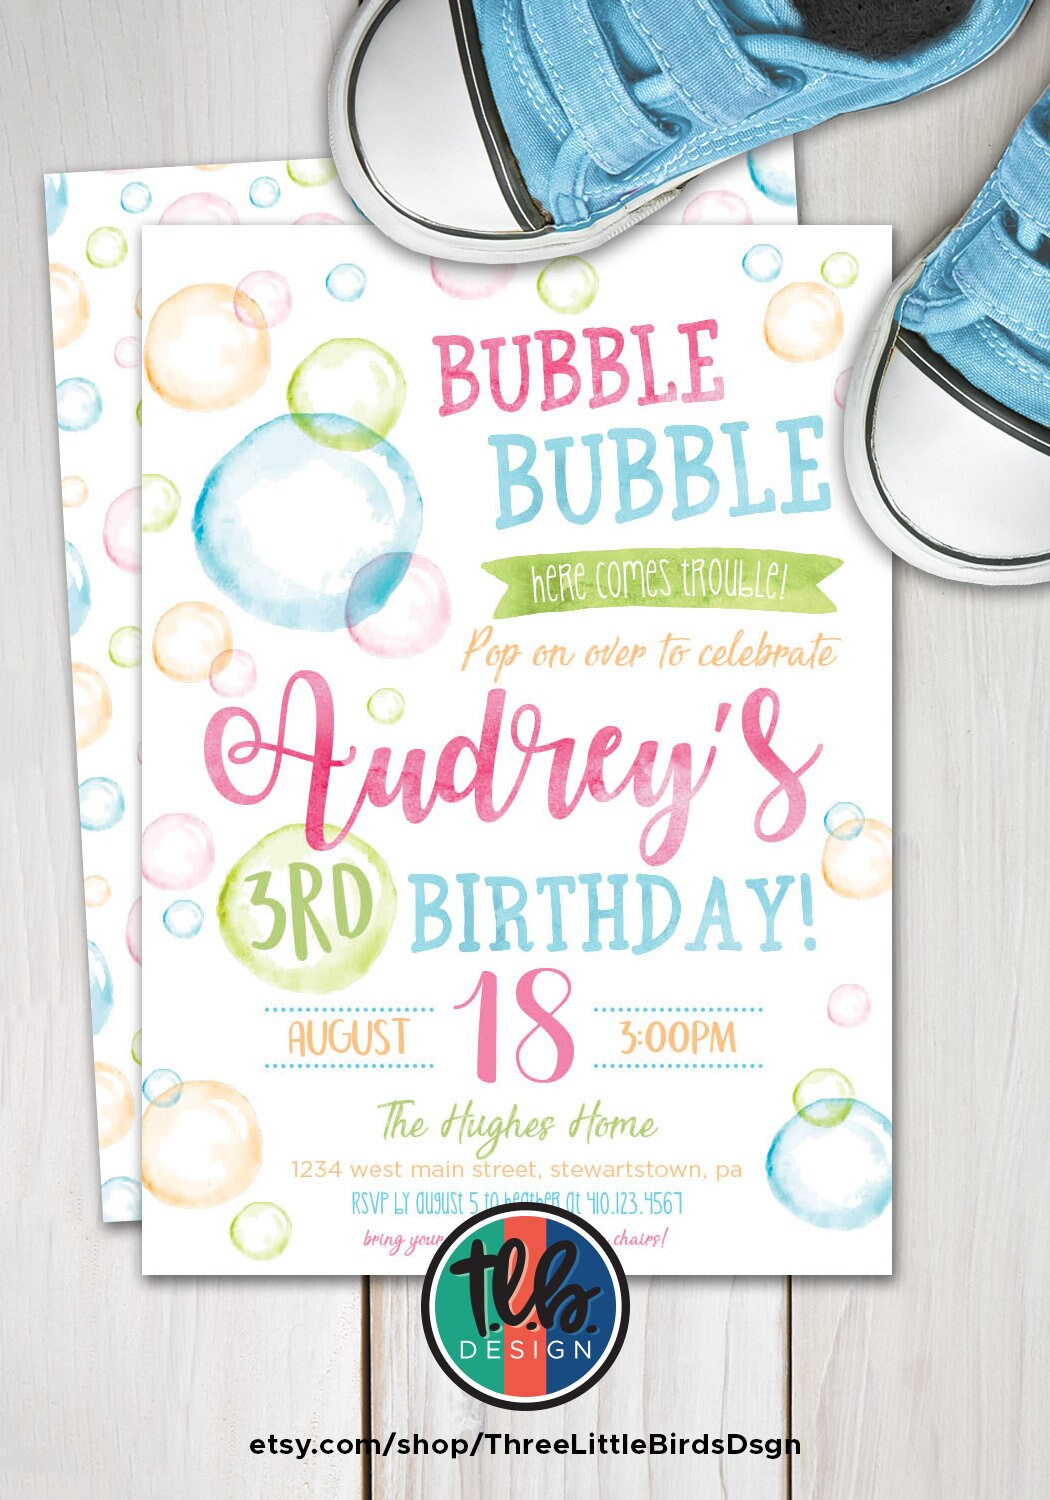 Bubble Birthday Invitation Bubbles Invite Bubble Party | Etsy